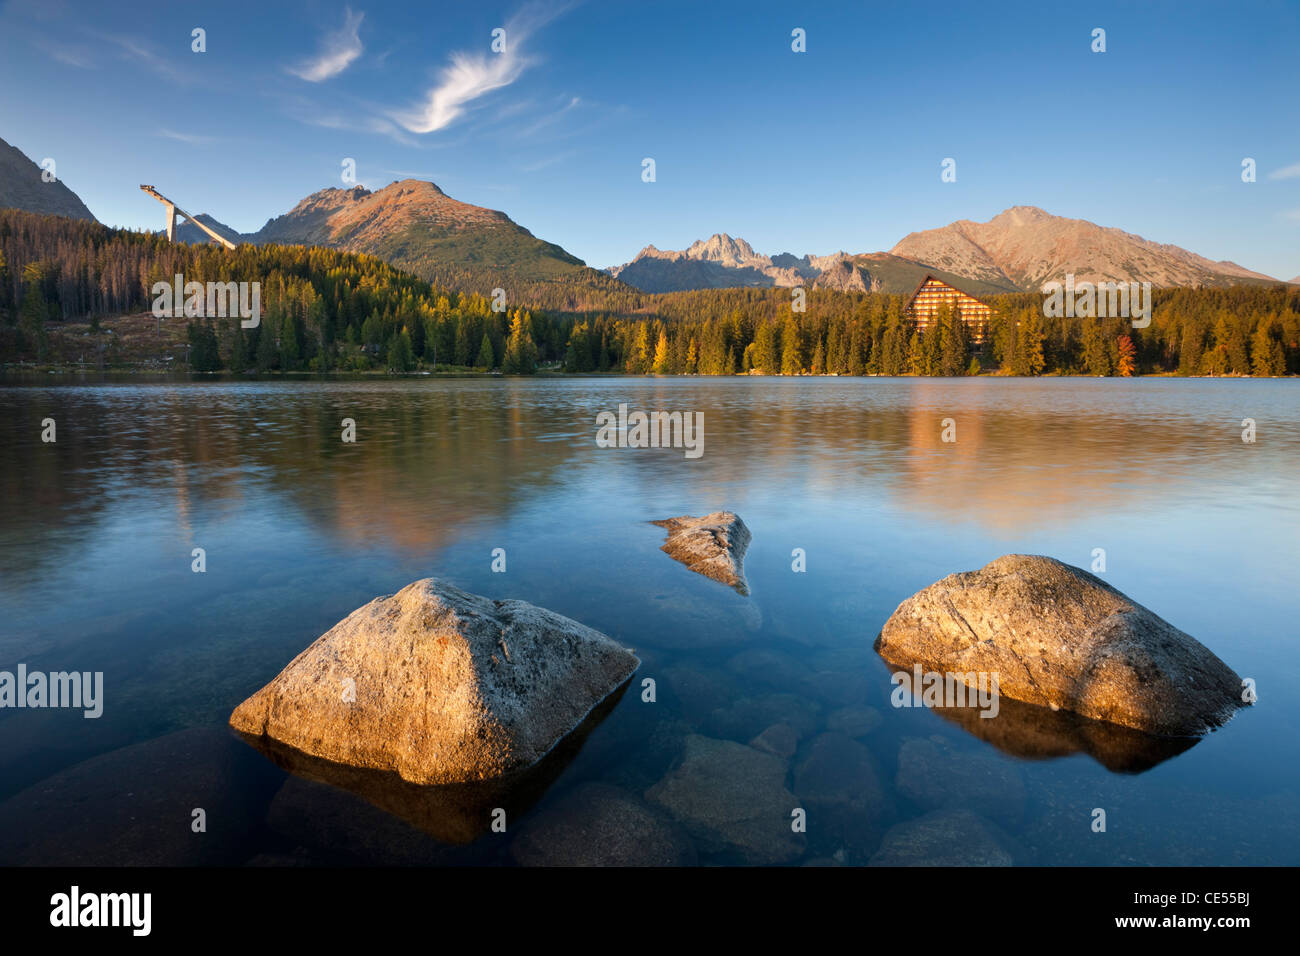 Strbske Pleso Lake, hotel and Ski Jump in the Tatra Mountains of Slovakia, Europe - Stock Image